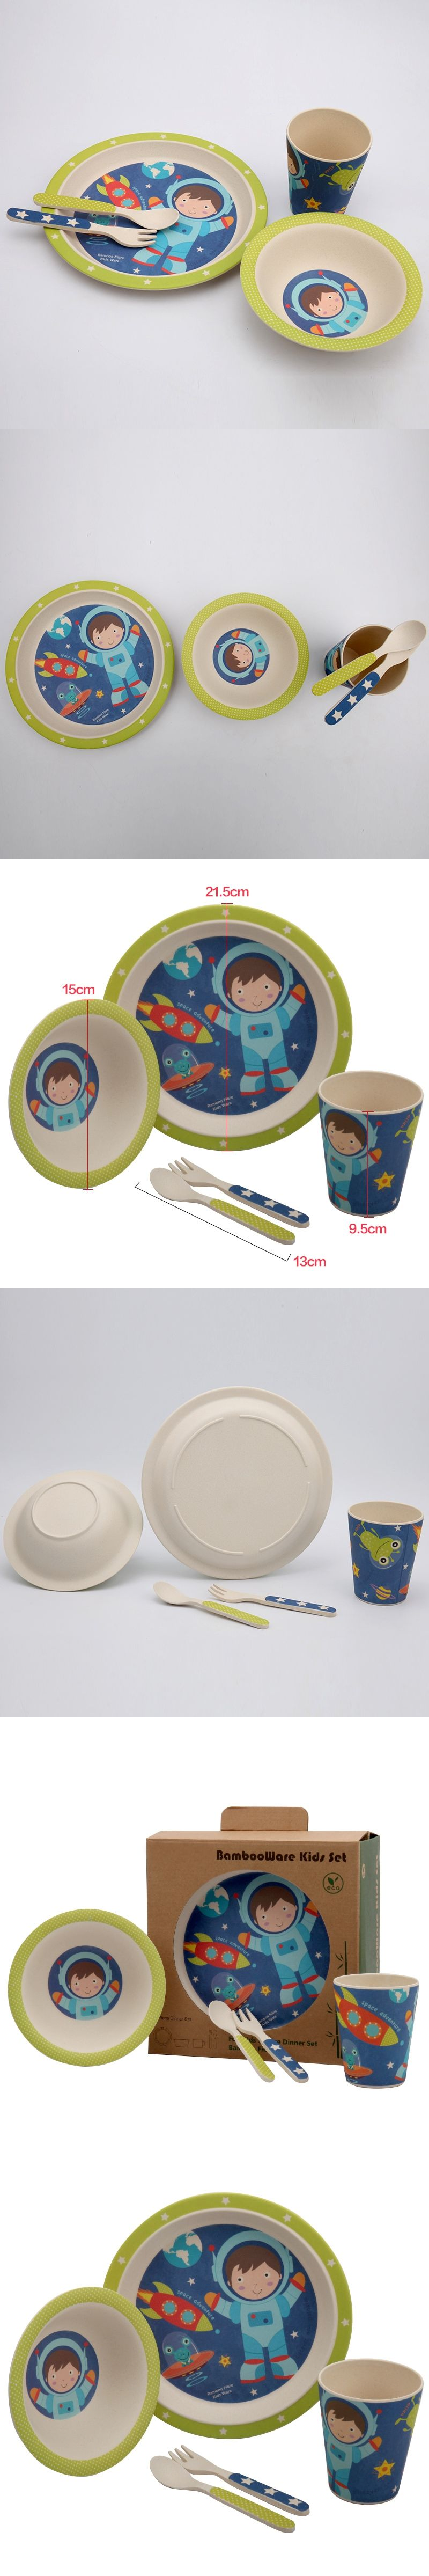 5pcs/set Baby Feeding Set with Bowl Plate Forks Spoon Cup Dinnerware Set Bamboo Fiber & 5pcs/set Baby Feeding Set with Bowl Plate Forks Spoon Cup Dinnerware ...